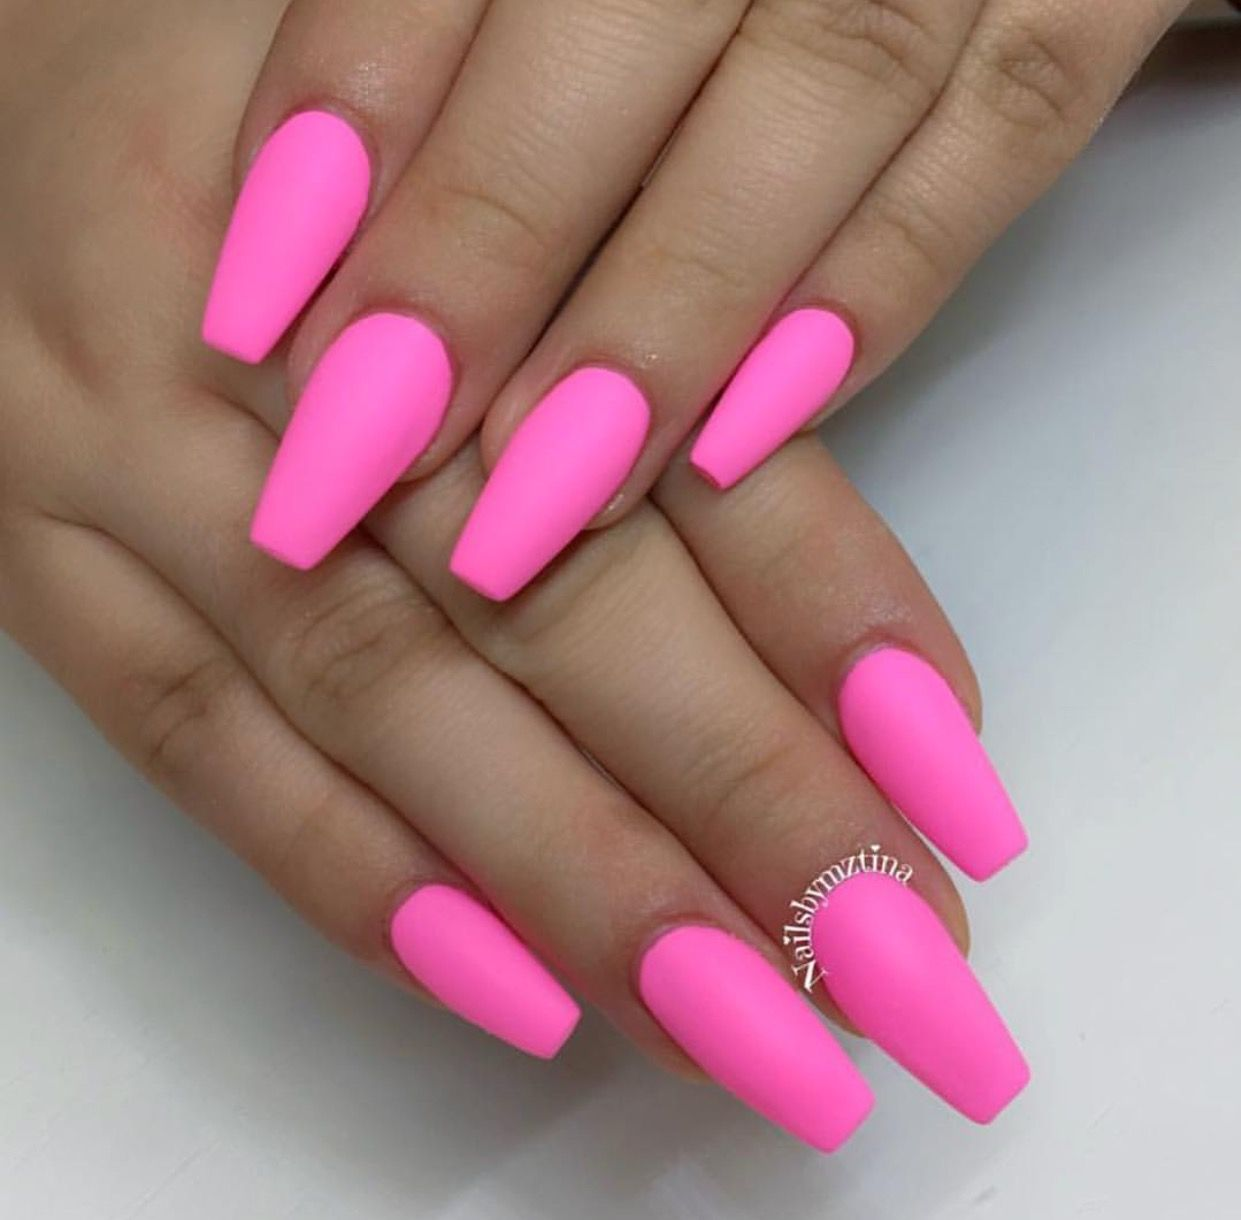 Bubble Gum Nail Art: Hot Pink Or Bubble Gum Pink